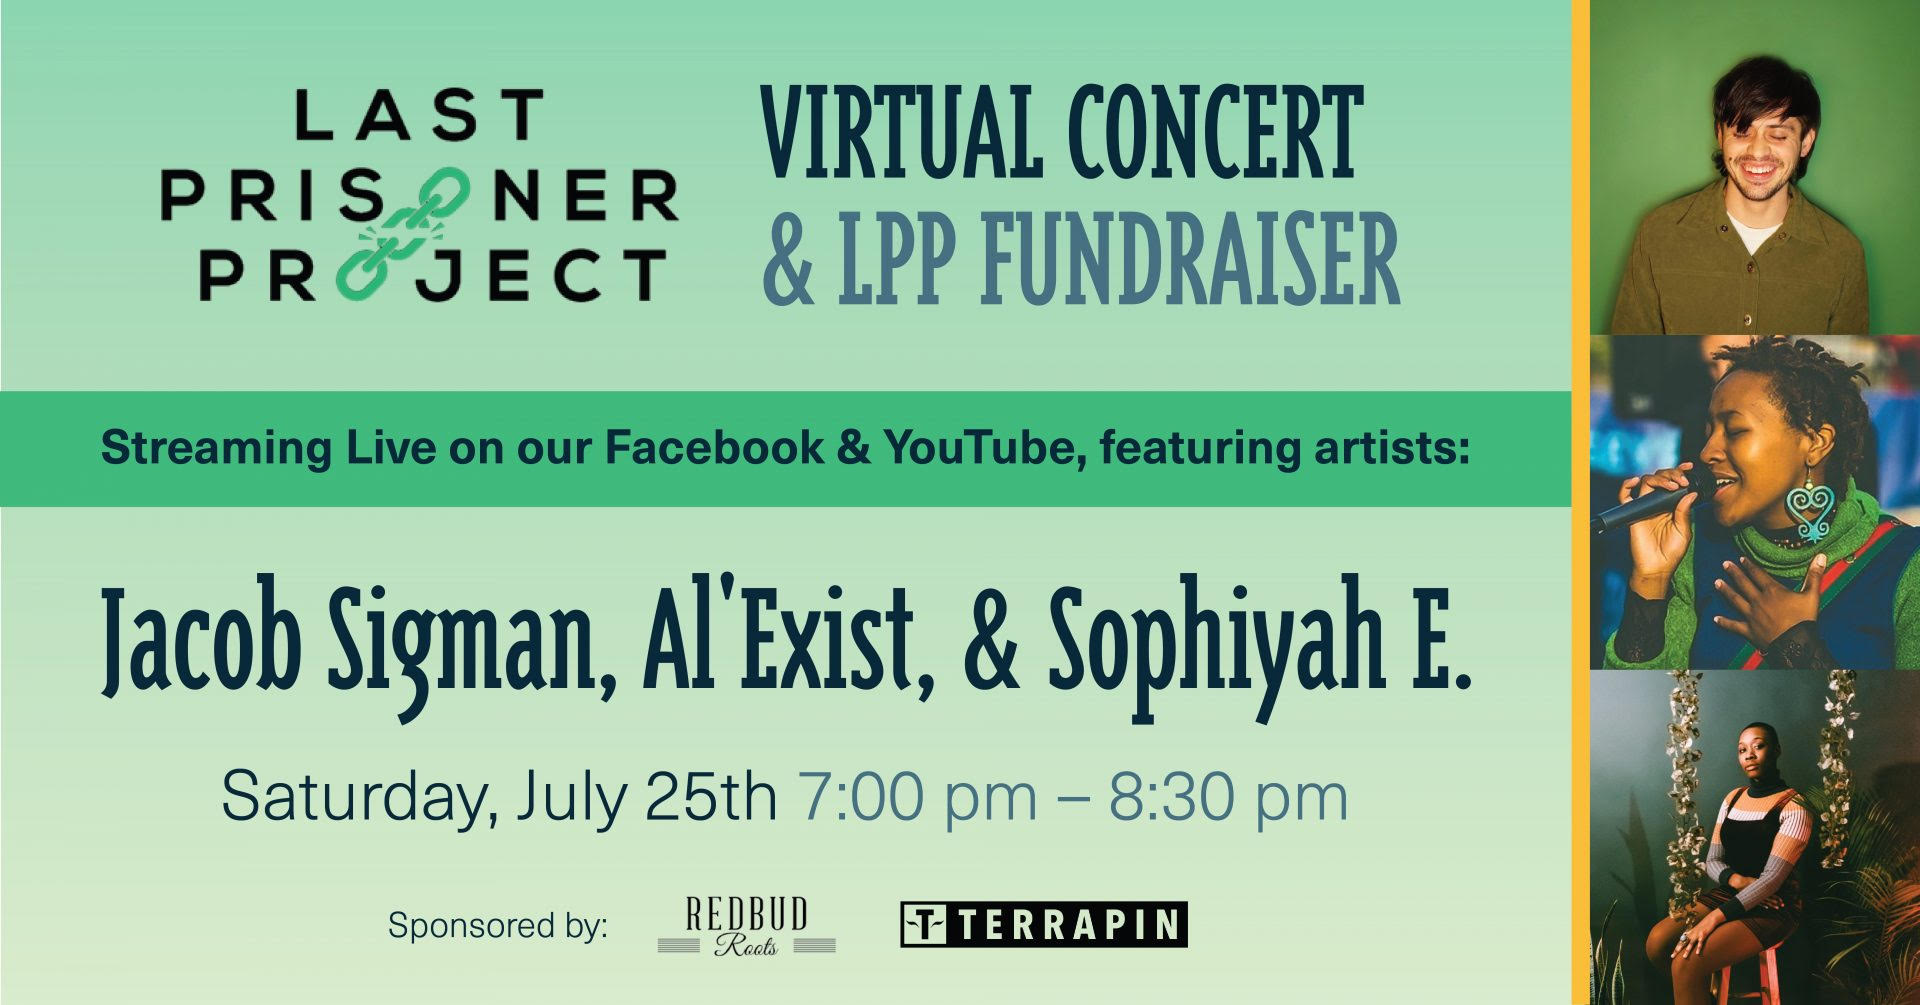 Upcoming: Om of Medicine's Virtual Concert for Last Prisoner Project